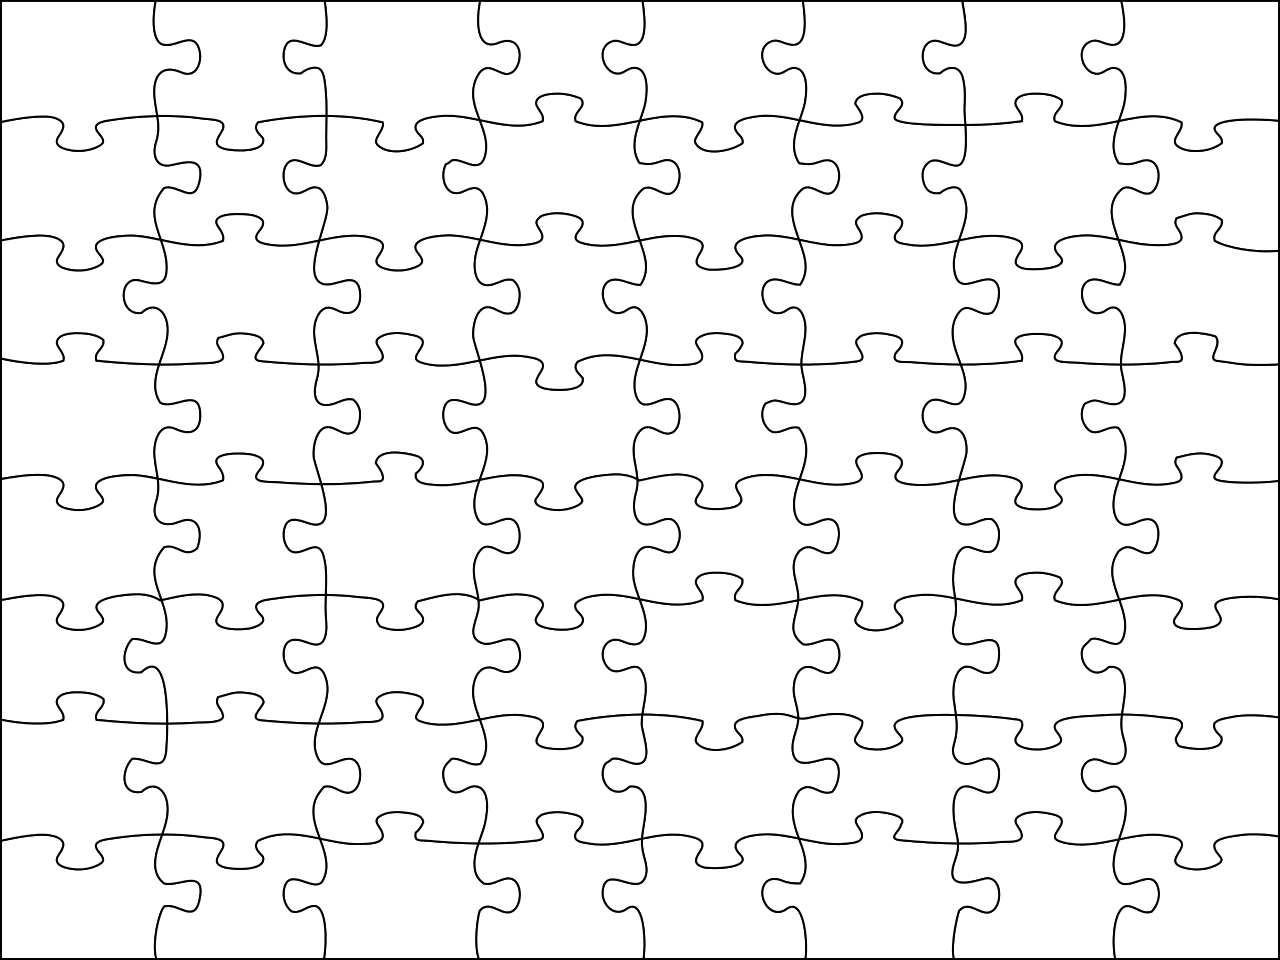 Free Jigsaw Puzzle, Download Free Clip Art, Free Clip Art On Clipart - Jigsaw Puzzle Maker Free Printable